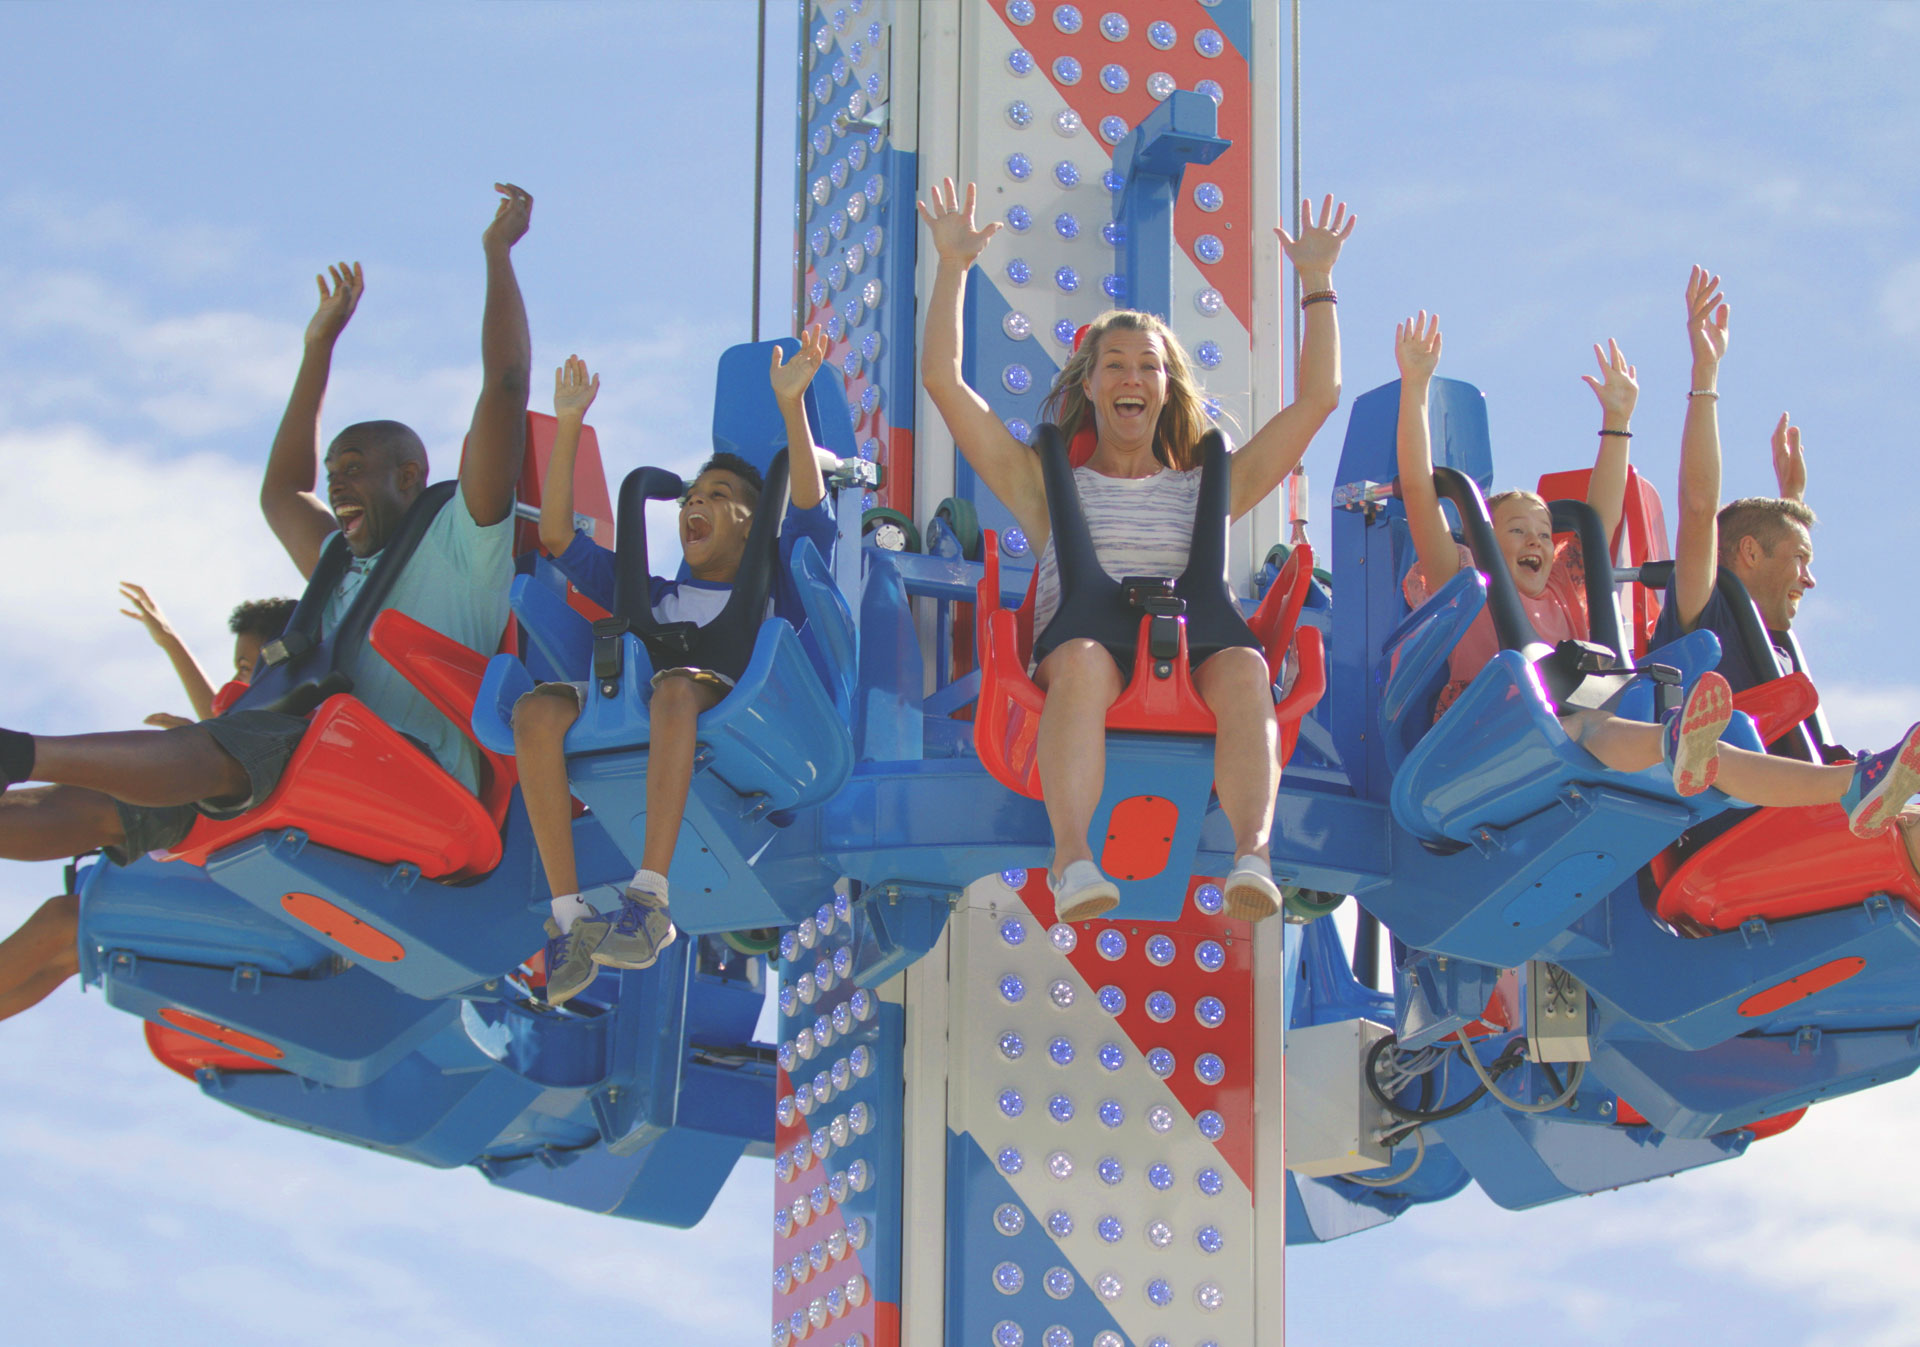 Spend the afternoon at Calaway Park and take a ride on the Sky Wynder.